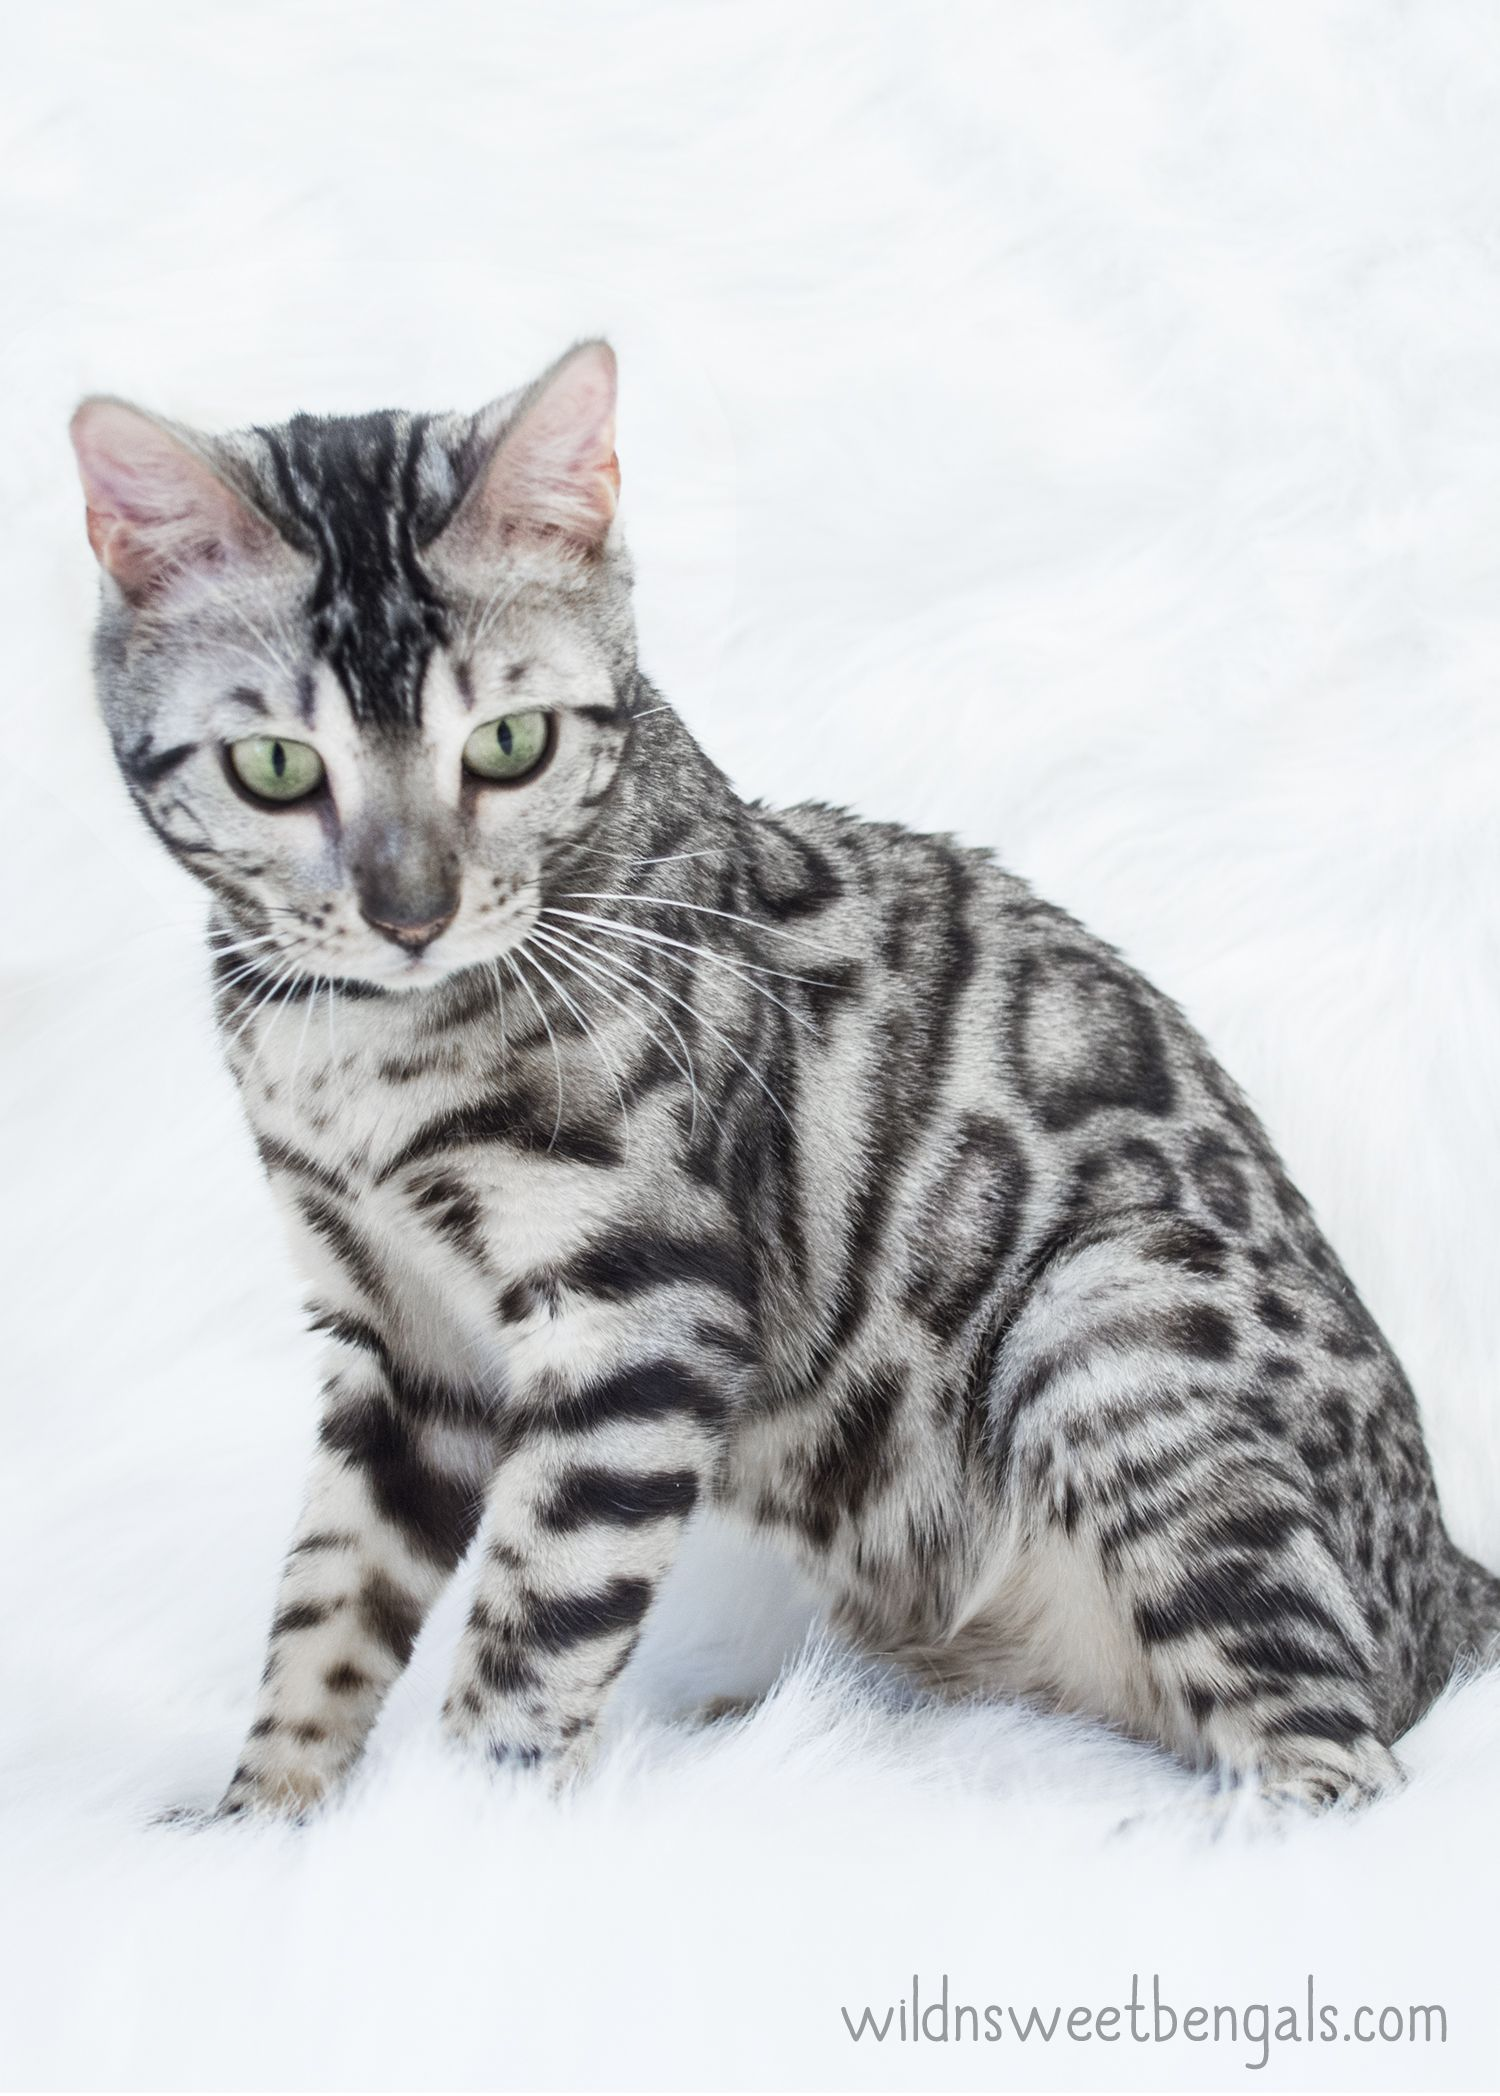 Every Cat Owner Can Learn From This Article More Details Can Be Found By Clicking On The Image Catstips Silver Bengal Cat Bengal Kitten Bengal Cat